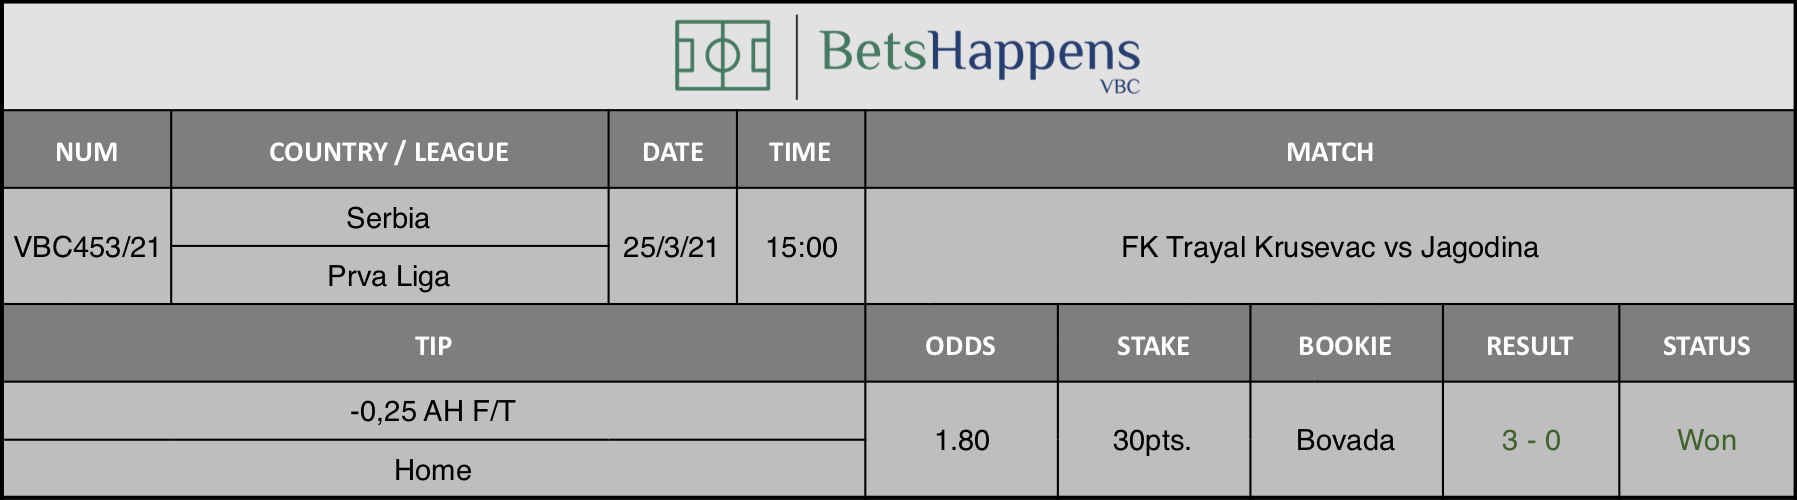 Results of our tip for the FK Trayal Krusevac vs Jagodina match where -0,25 AH F/T Home is recommended.